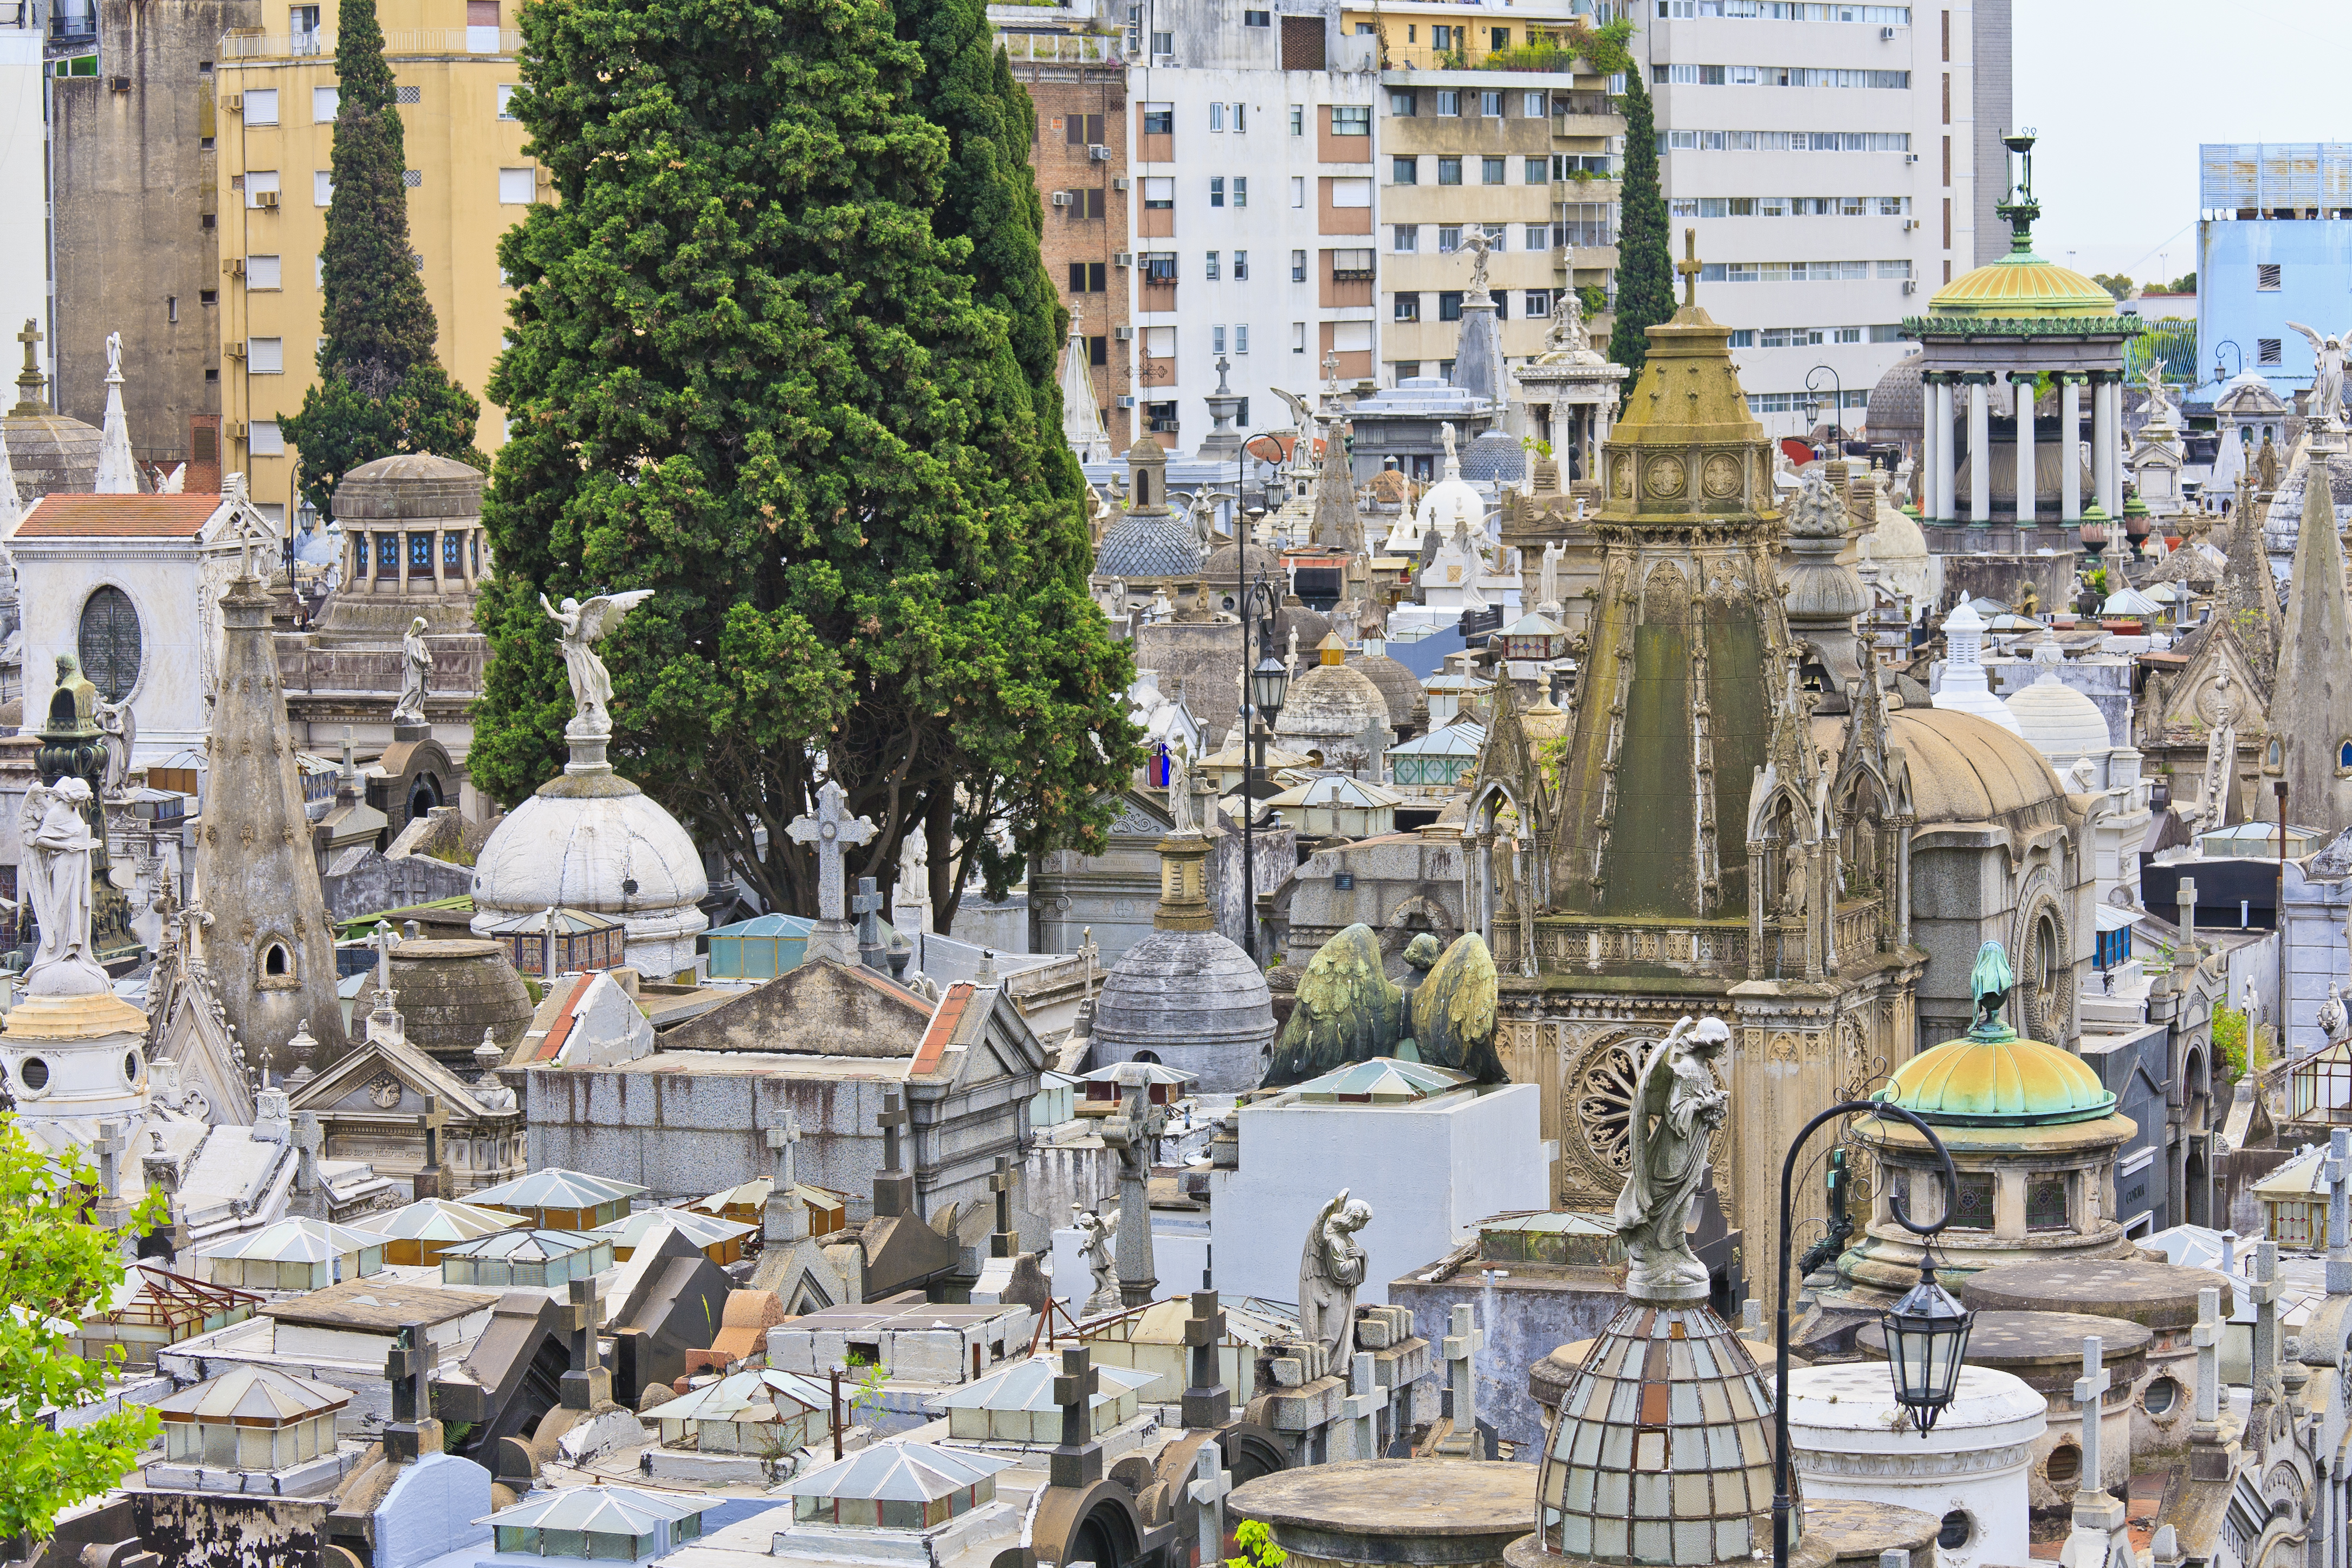 Recoleta Cemetery from above